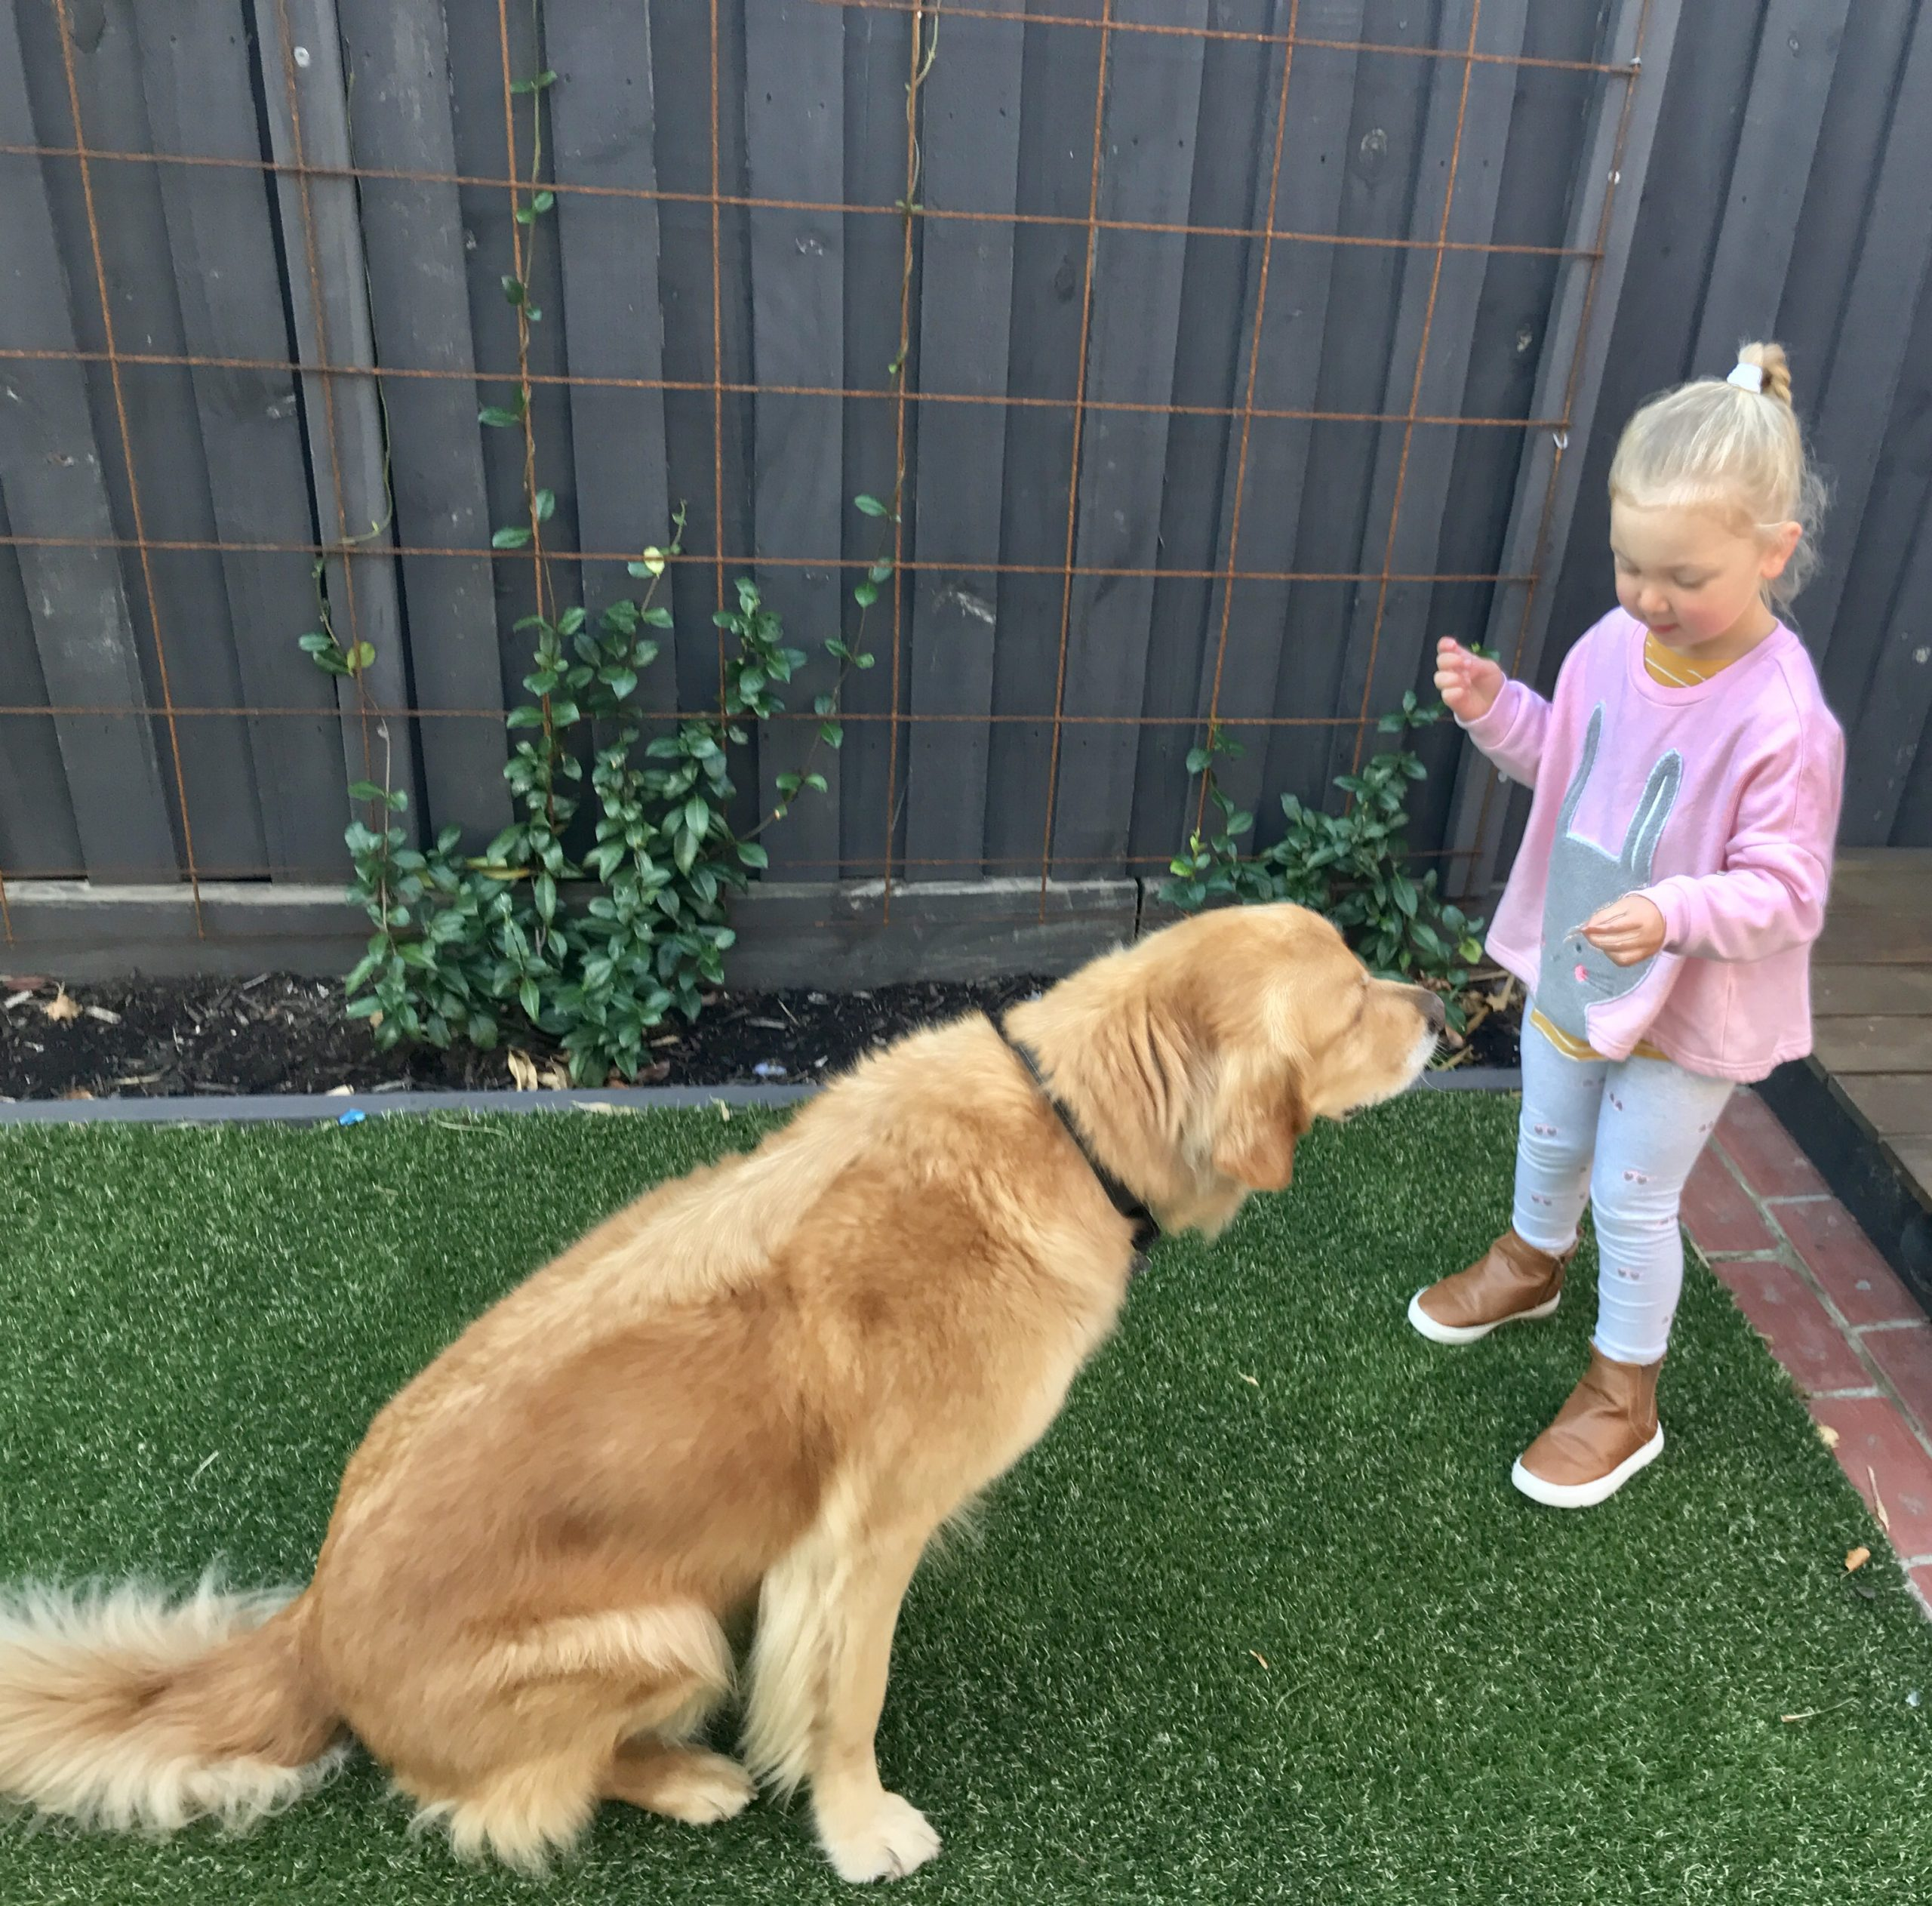 Three steps to Teach your child how to safely say hello to dogs